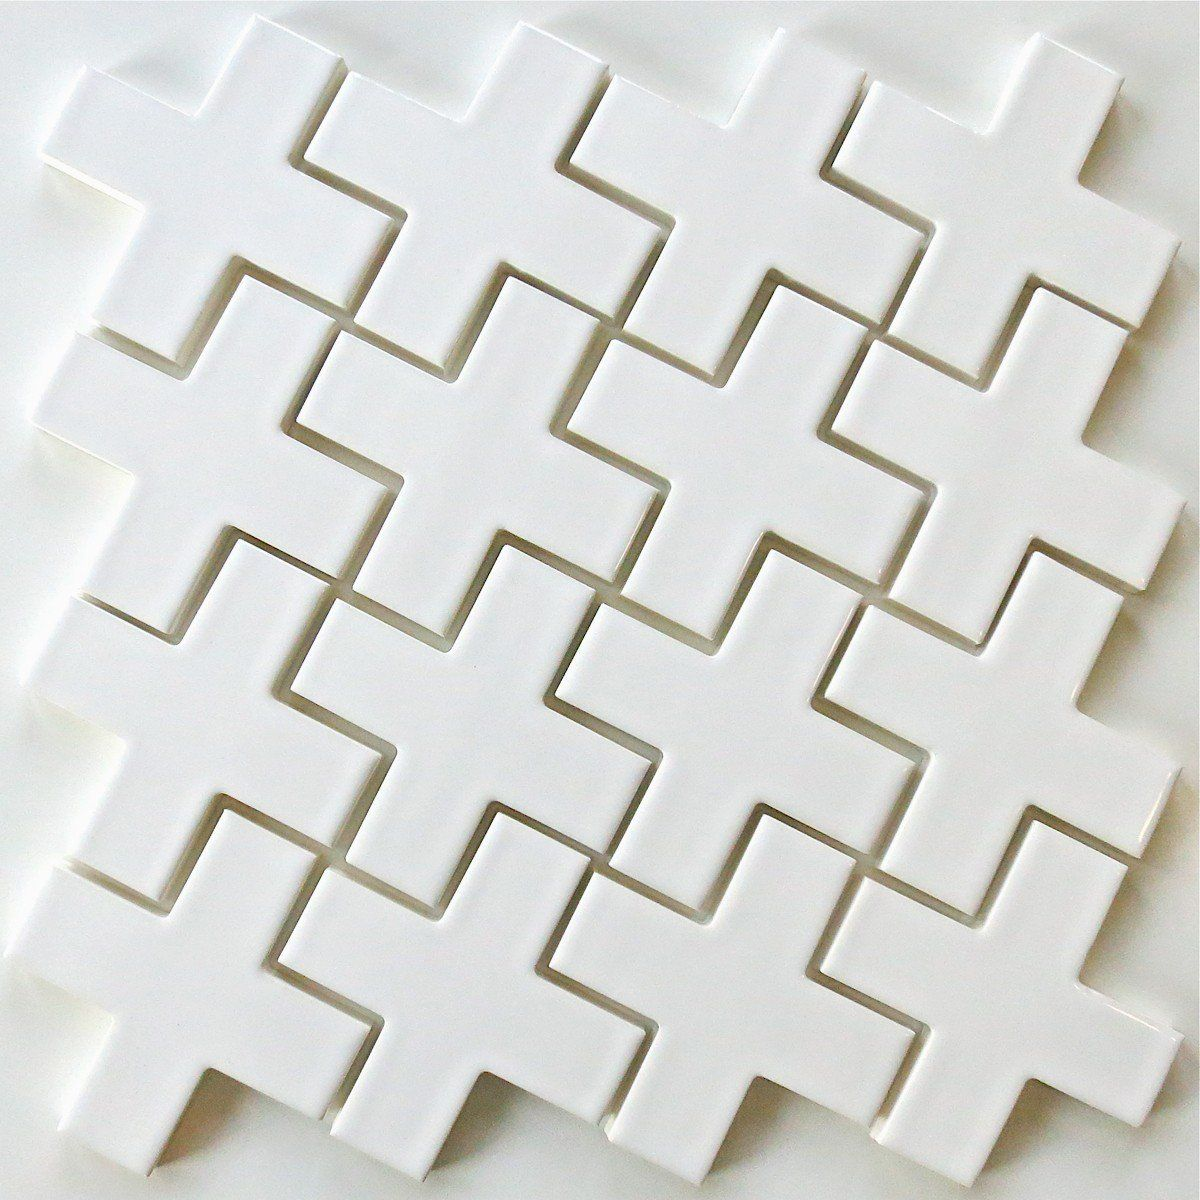 Kiln Ceramic X Tile Milk White Mosaic Tile Our X Tile 4 Kiln